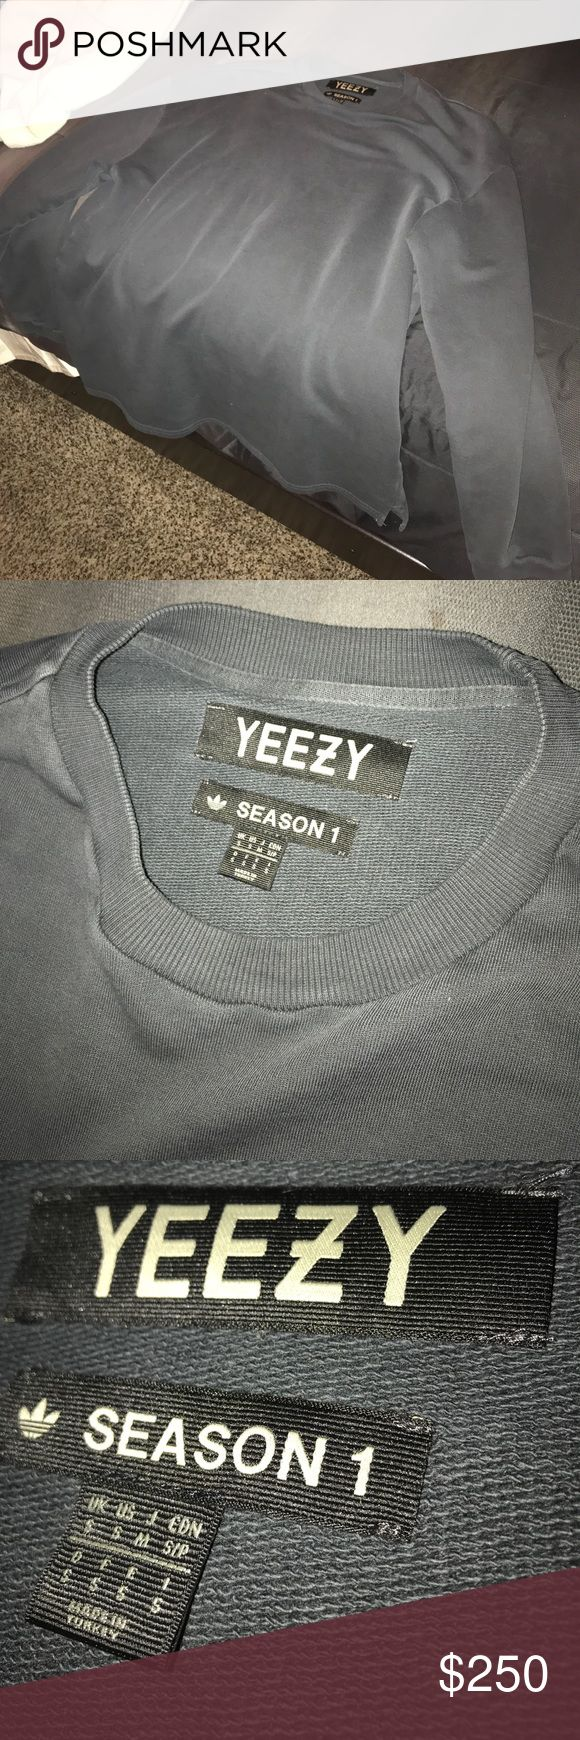 Yeezy Season 1 Black Sweatshirt Mint condition black sweatshirt from season 1 of yeezy. No holes or marks. Very warm and comfortable. Size Small but fits like a Large. Very rare! Yeezy Shirts Sweatshirts & Hoodies